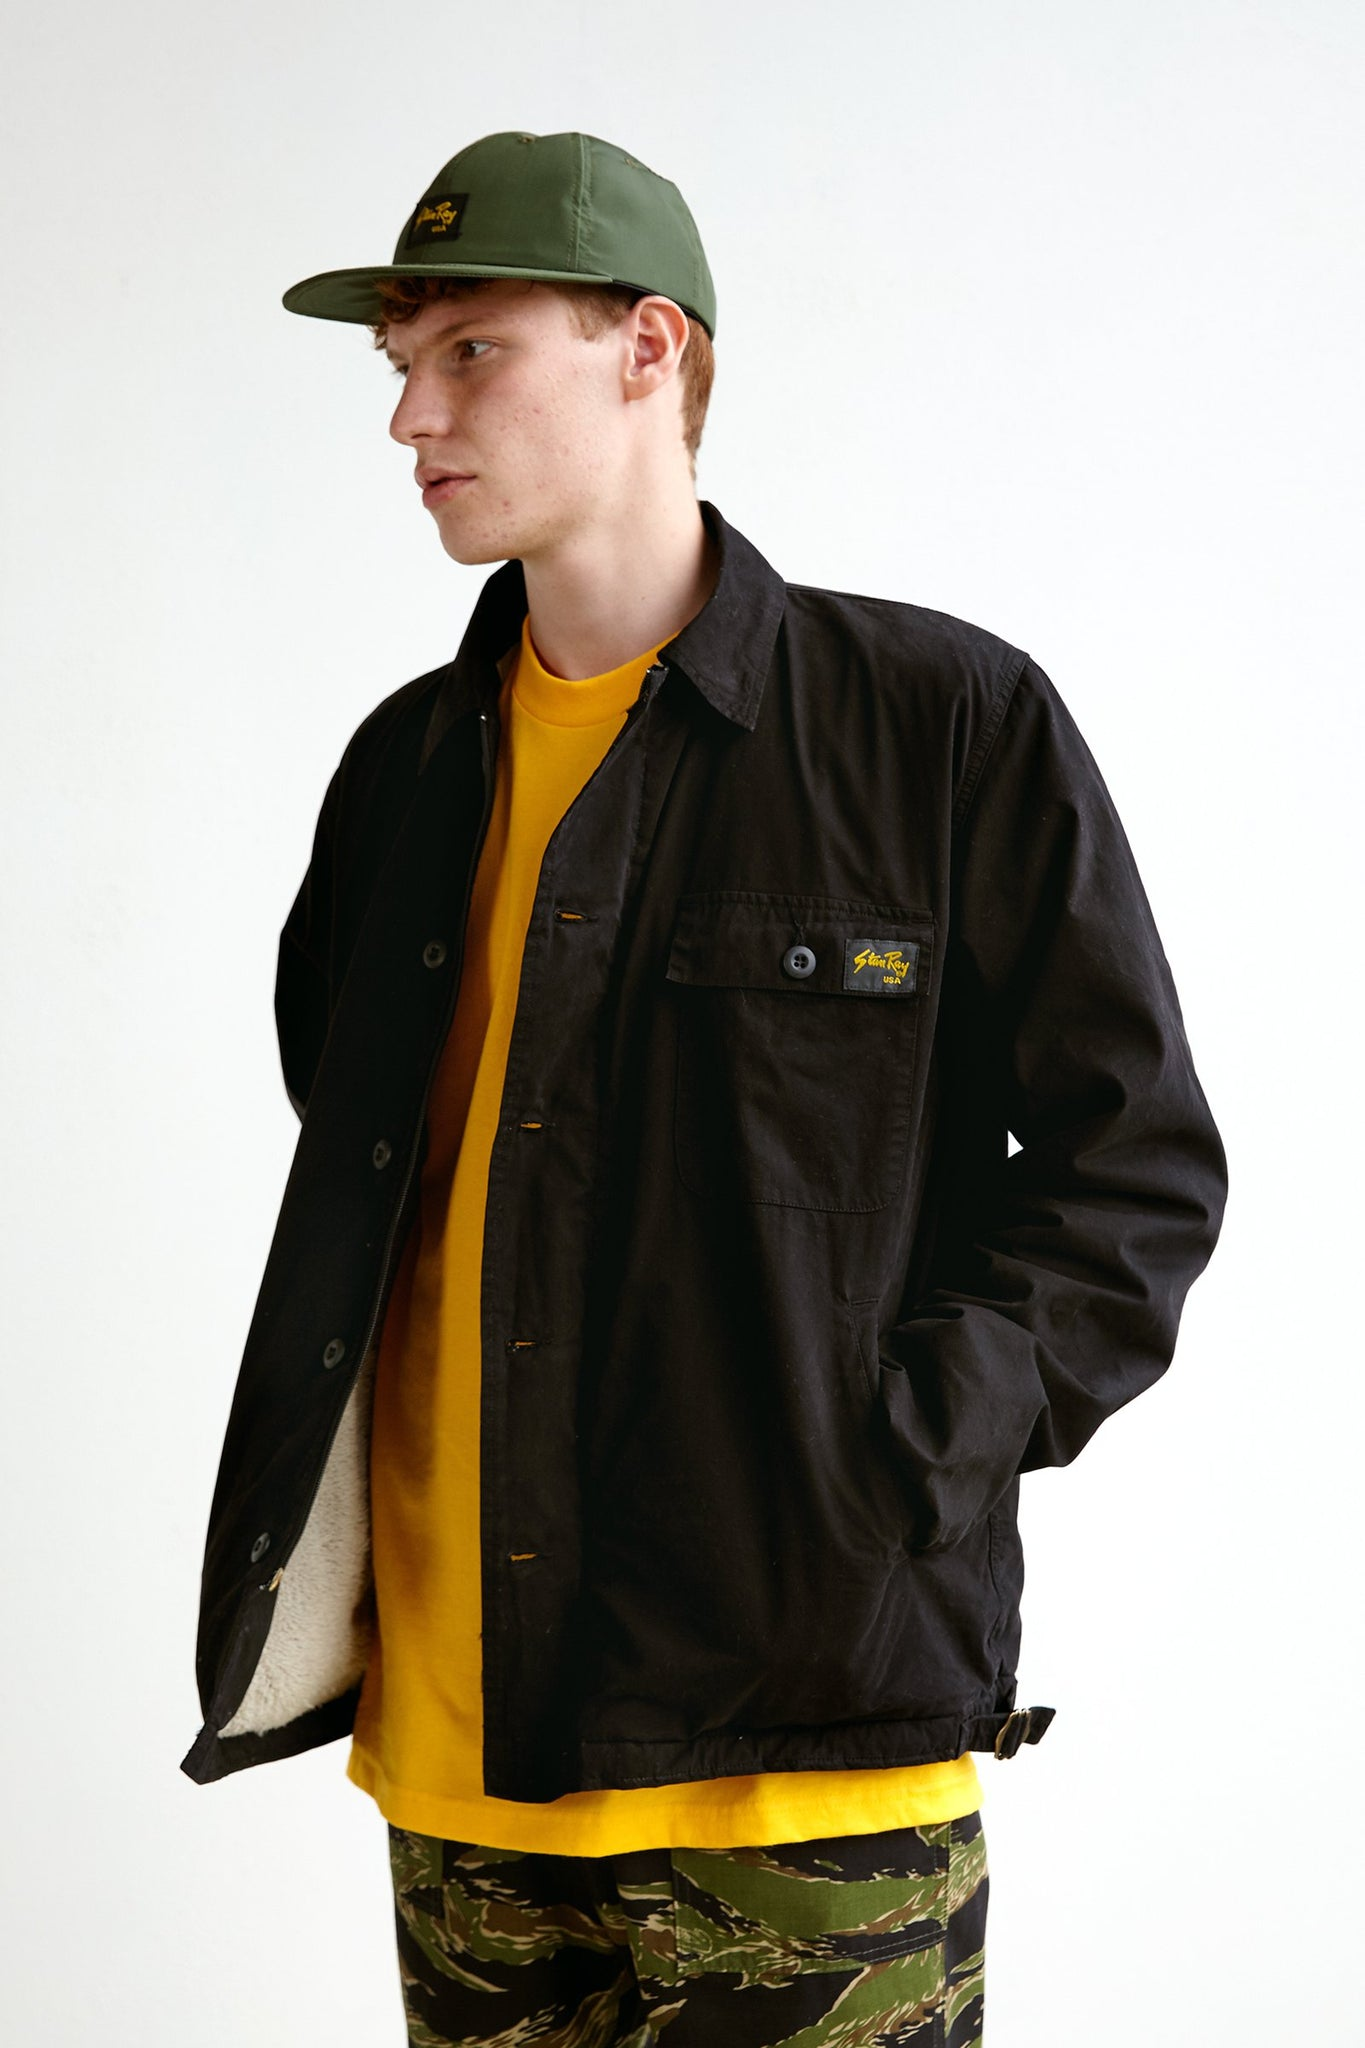 Stan Ray - A2 DECK JACKET - sizes S + L sold out!